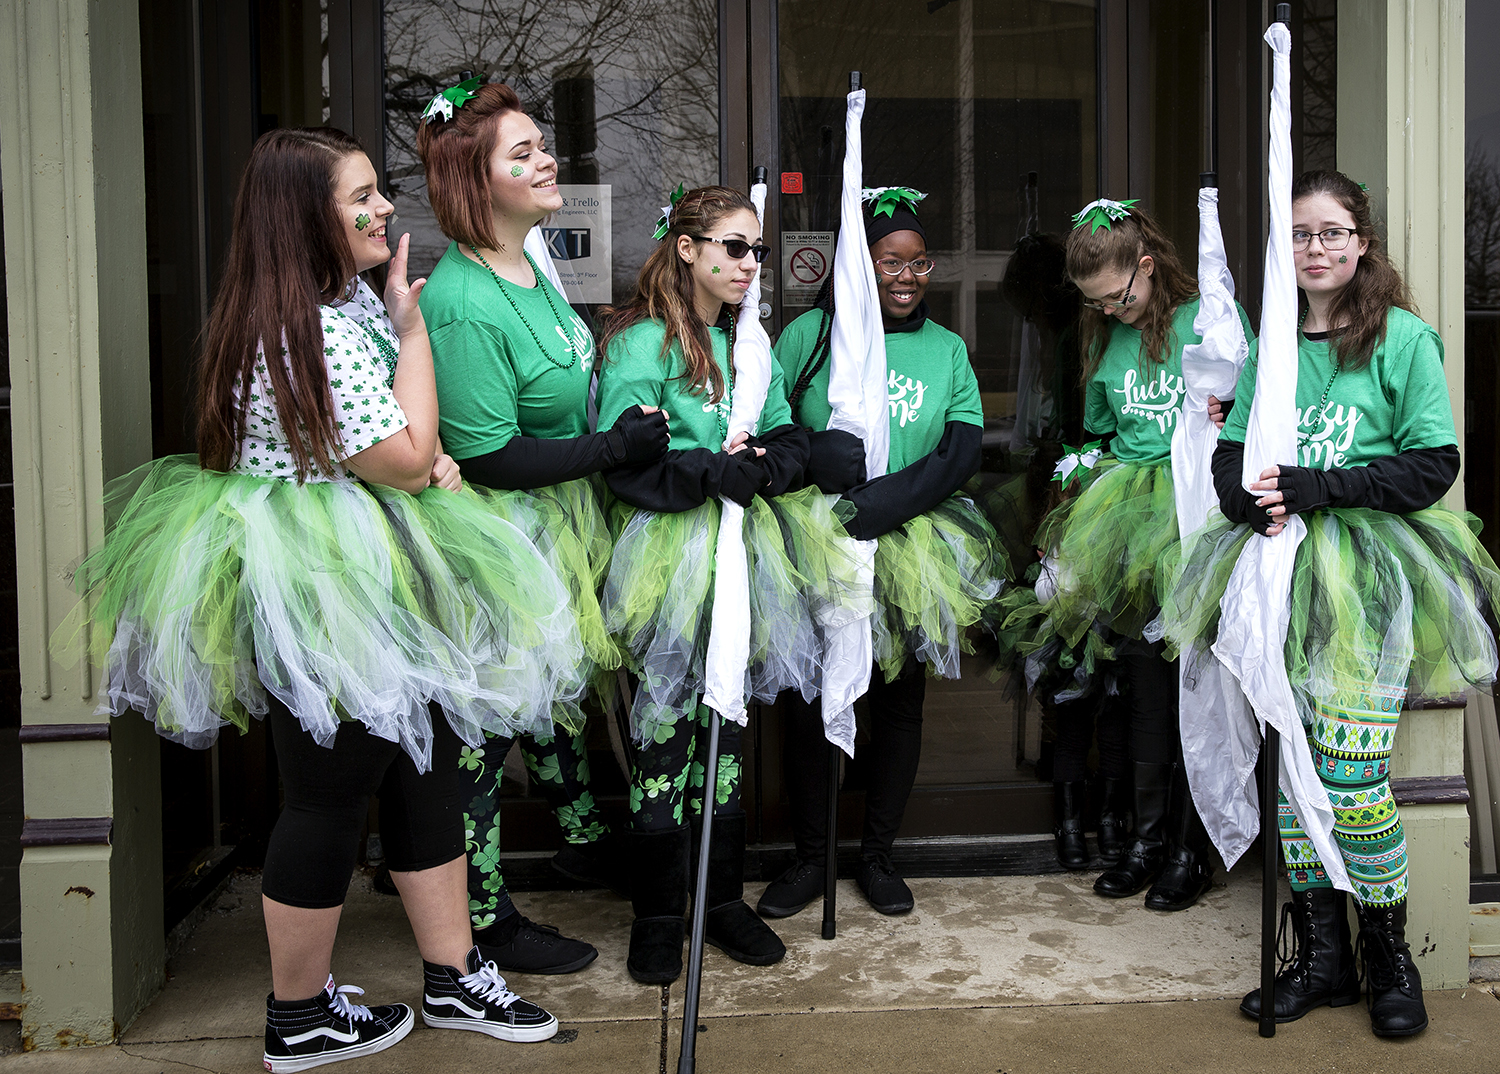 Members of the Lanphier High School marching band flag team huddle in the entrance to the Springfield Convention and Visitor's Bureau before the start of the St. Patrick's Day Parade Saturday, March 17, 2018  in Springfield, Ill. [Rich Saal/The State Journal-Register]